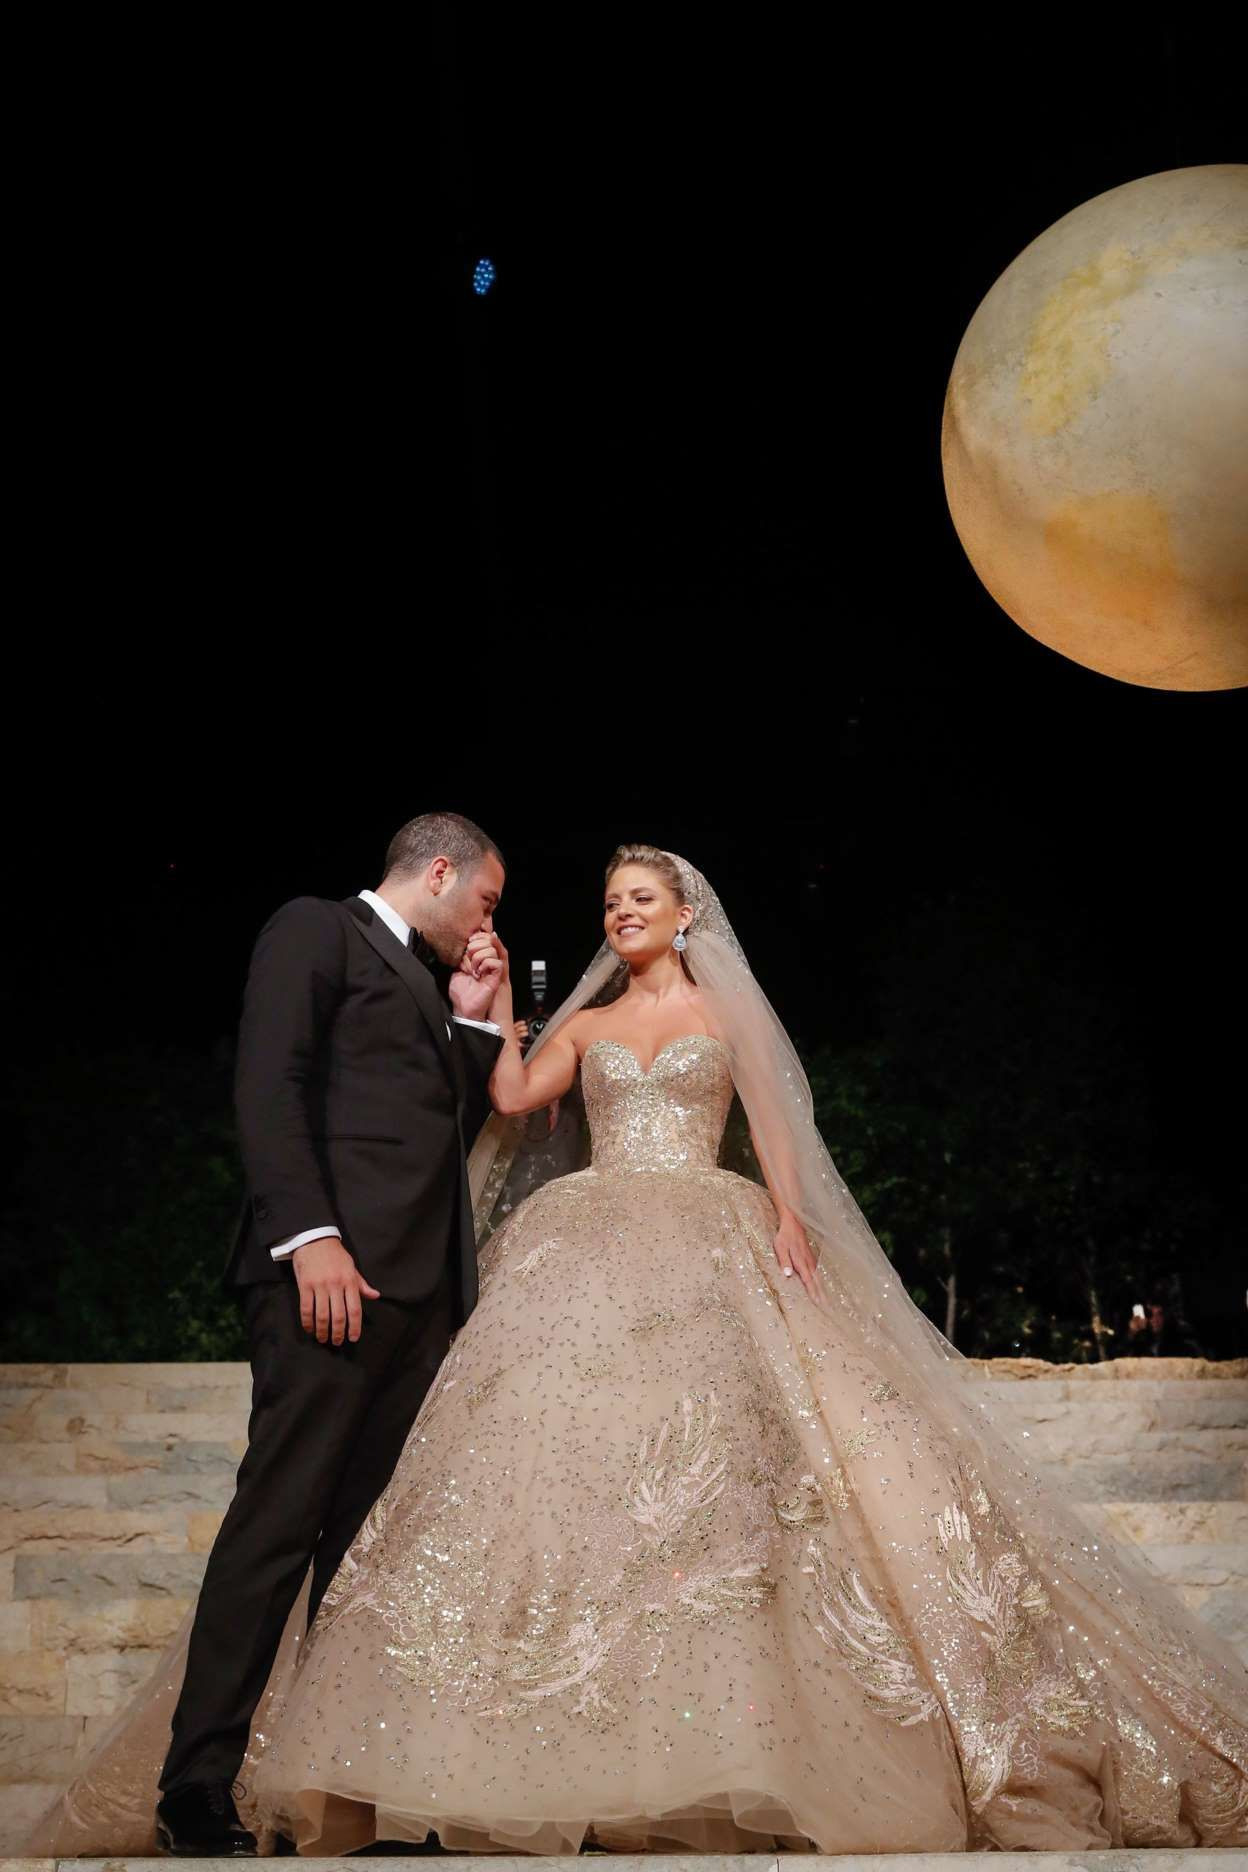 Elie Saab Designed The Most Beautiful Wedding Dress For His